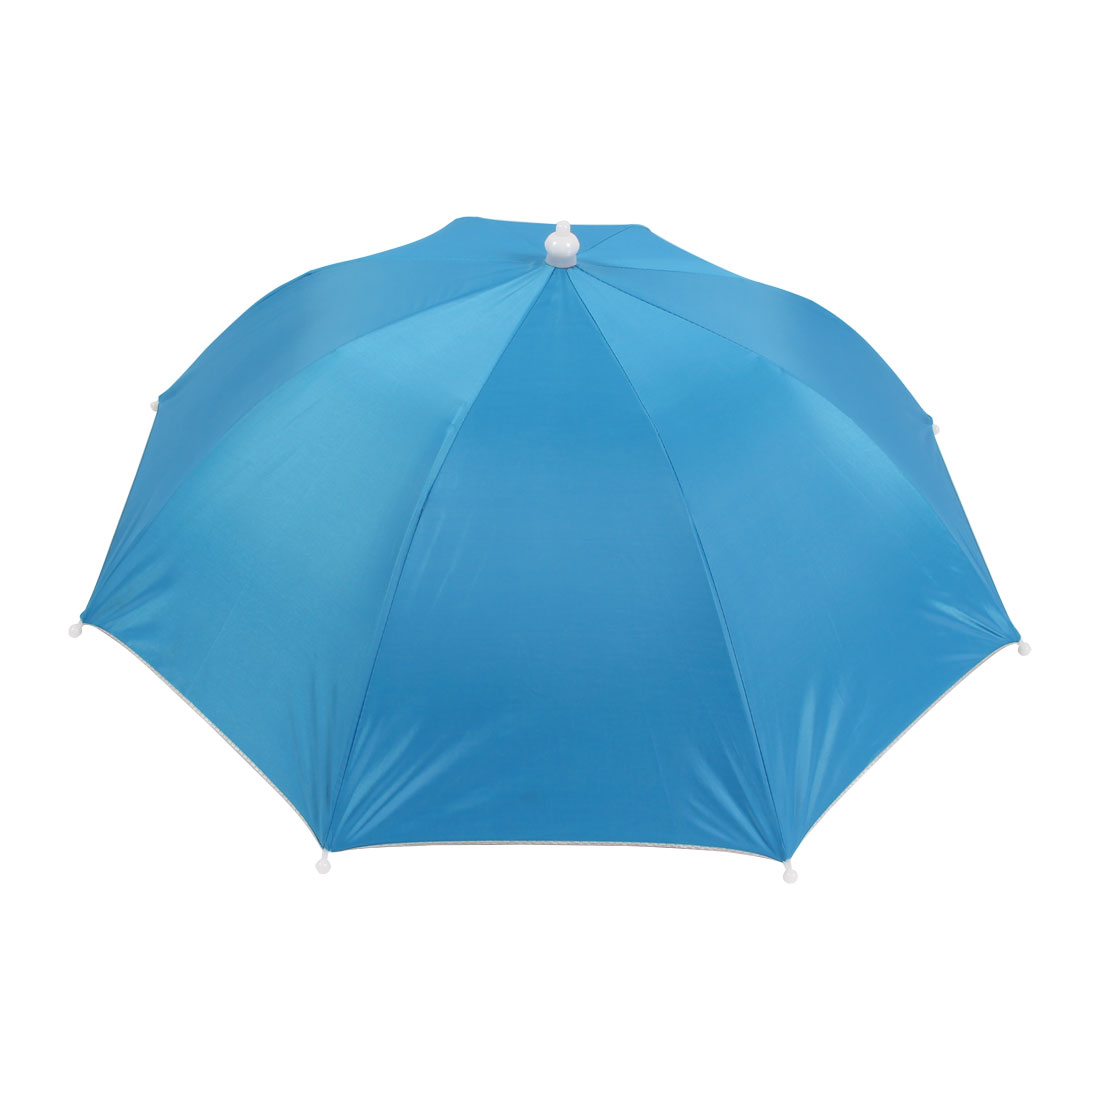 White Elastic Headband Sky Blue Polyester Canopy Umbrella Hat Cap for Fishing